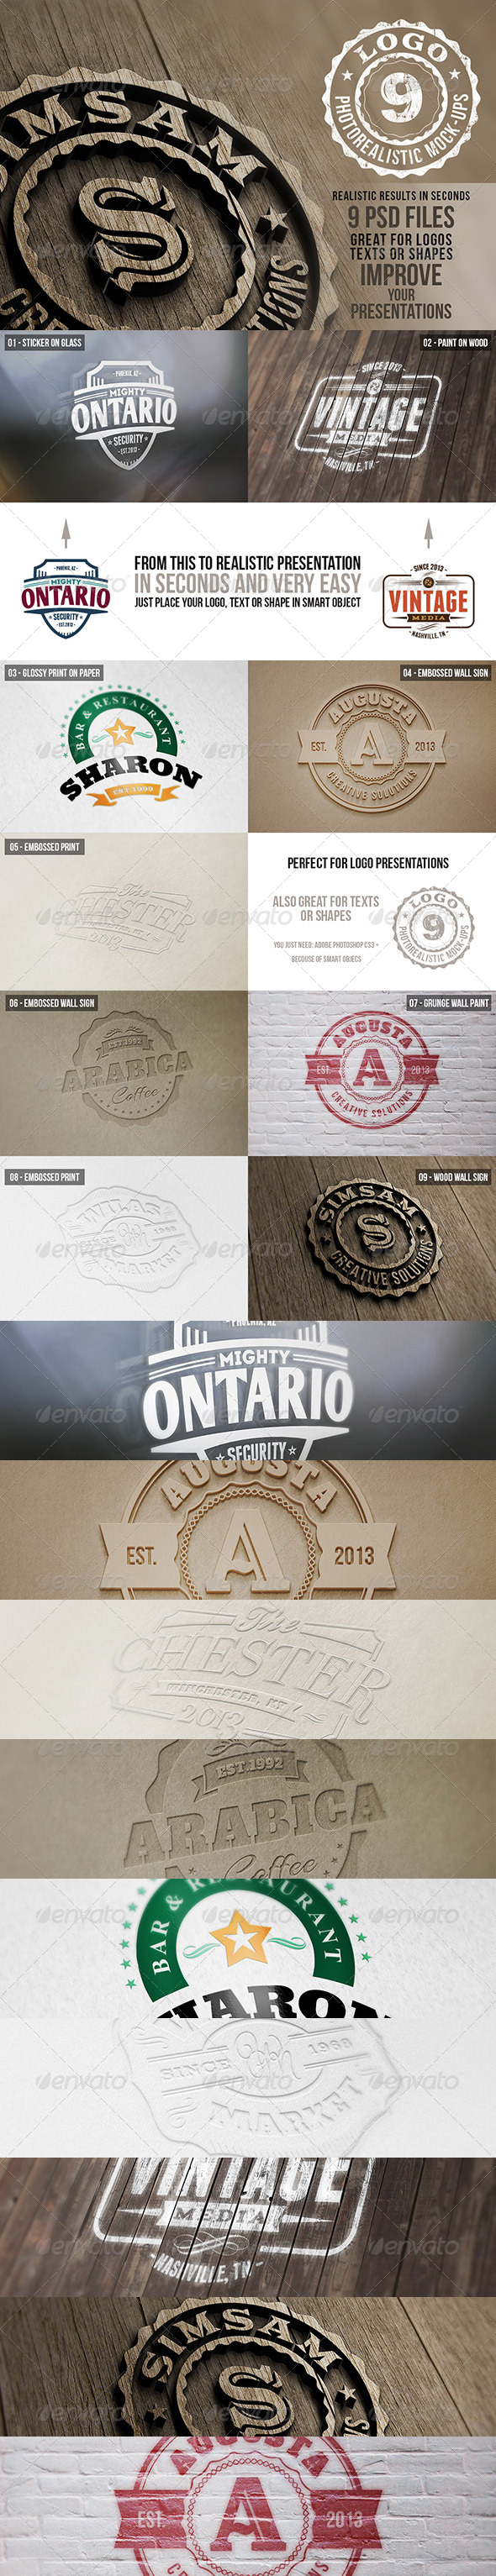 GraphicRiver Photorealistic Logo Mock-Ups Vol.1 5507446